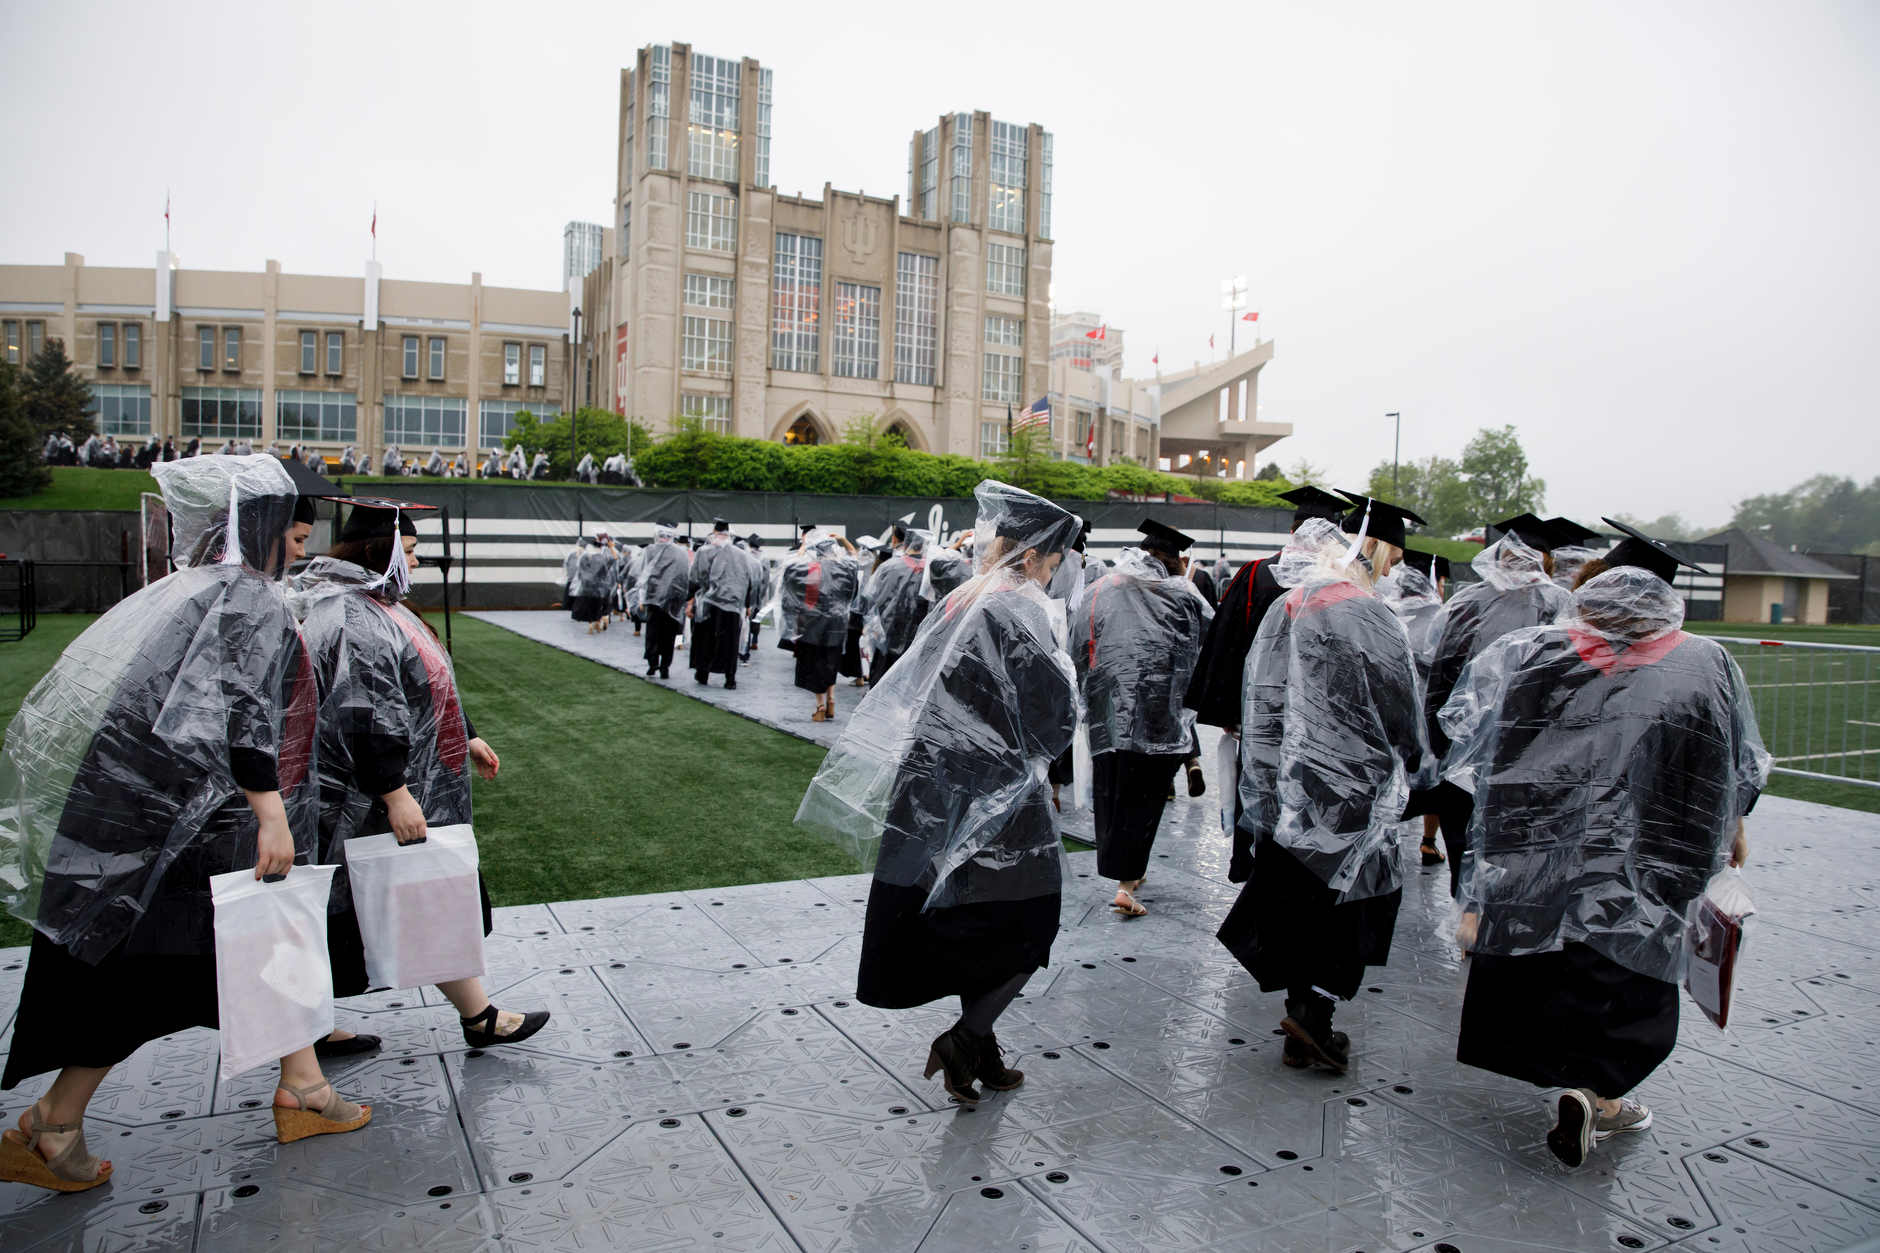 Graduates walk in the processional for the Indiana University Bloomington Undergraduate Commencement from Mellencamp Pavilion to Memorial Stadium on Saturday, May 4, 2019. (James Brosher/Indiana University)